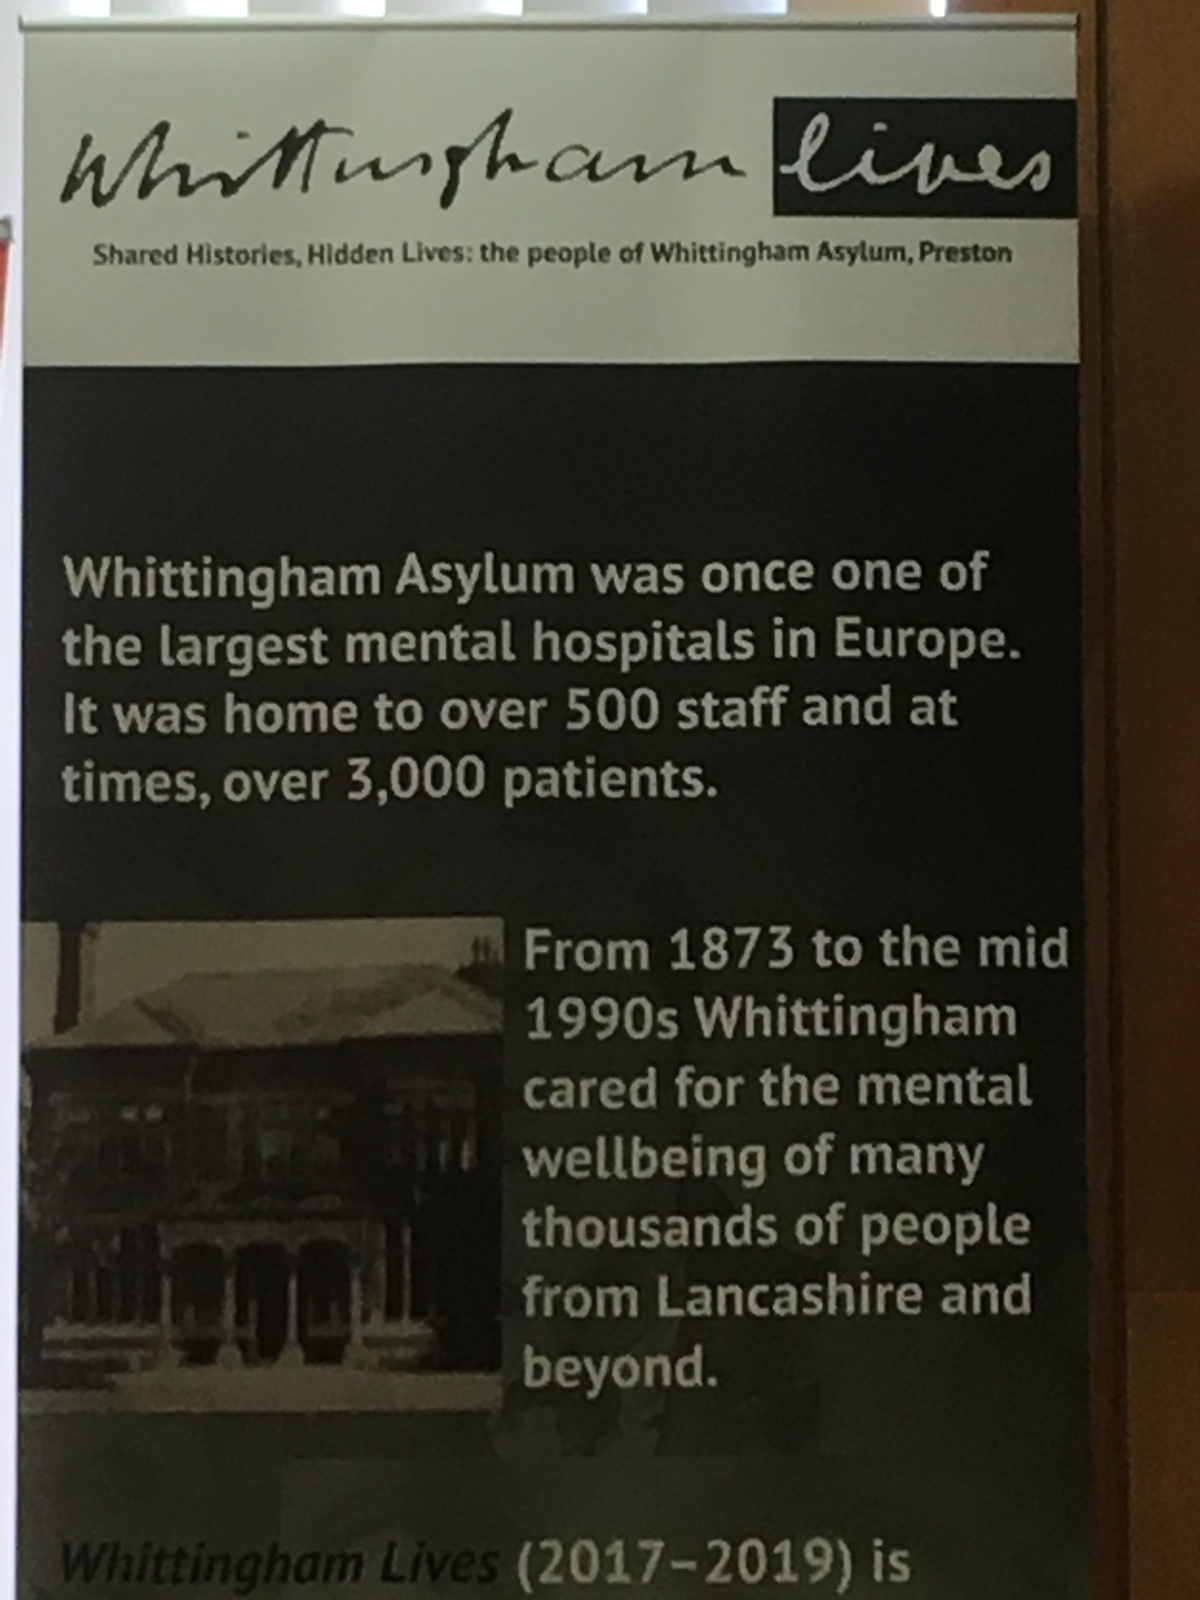 Voices of Whittingham….Past lives in anAsylum.